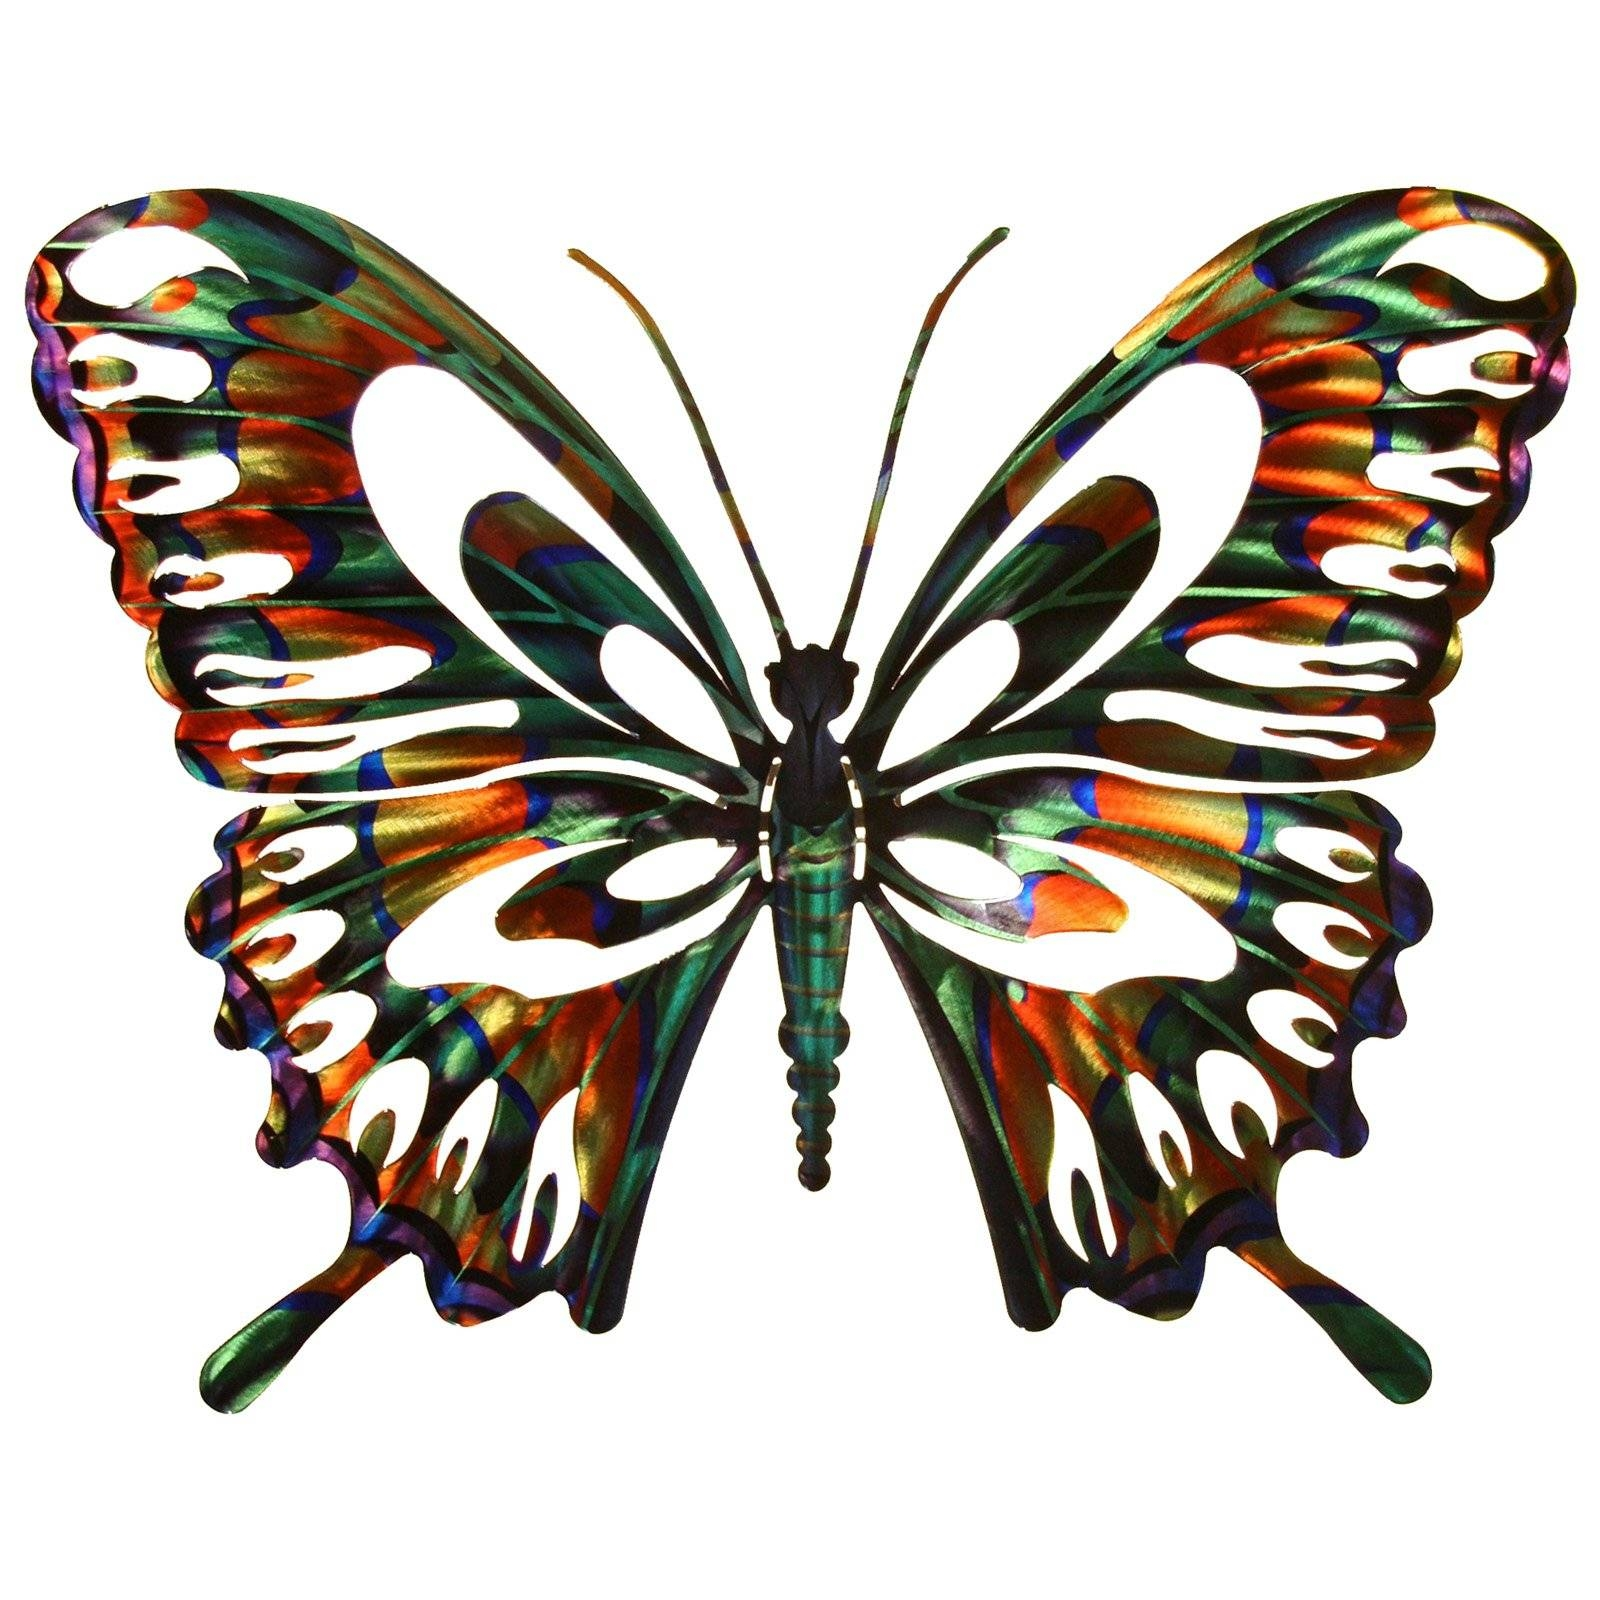 3d Butterfly Metal Outdoor Wall Art | Hayneedle In Latest 3d Butterfly Wall Art (View 16 of 20)